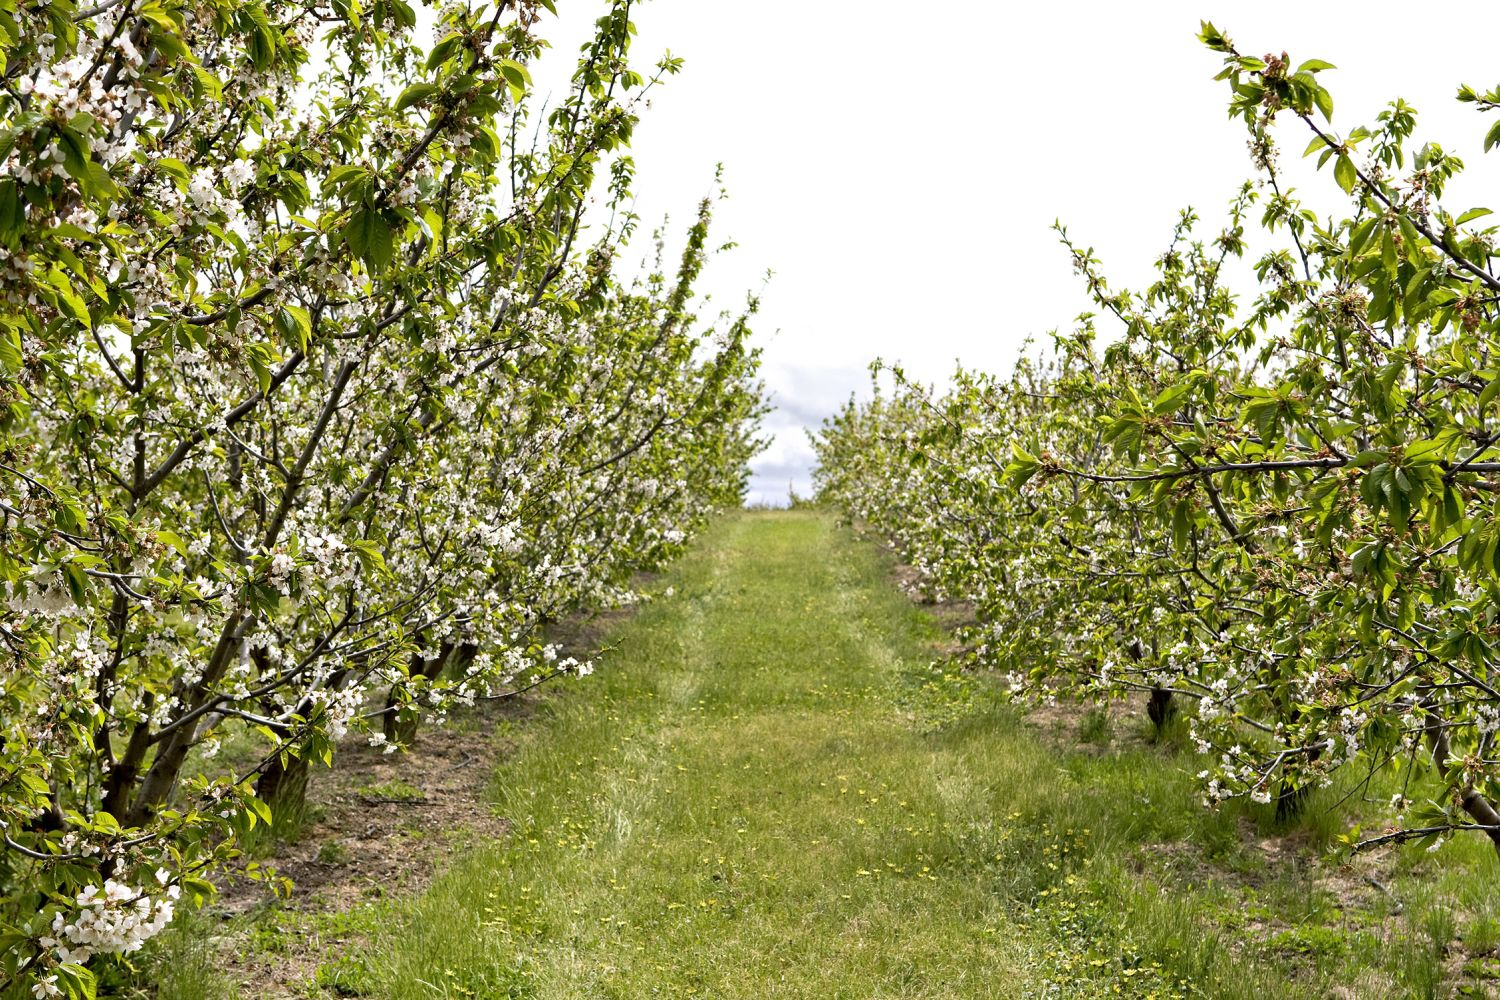 A cherry orchard blossoming in Young, Australia's cherry capital